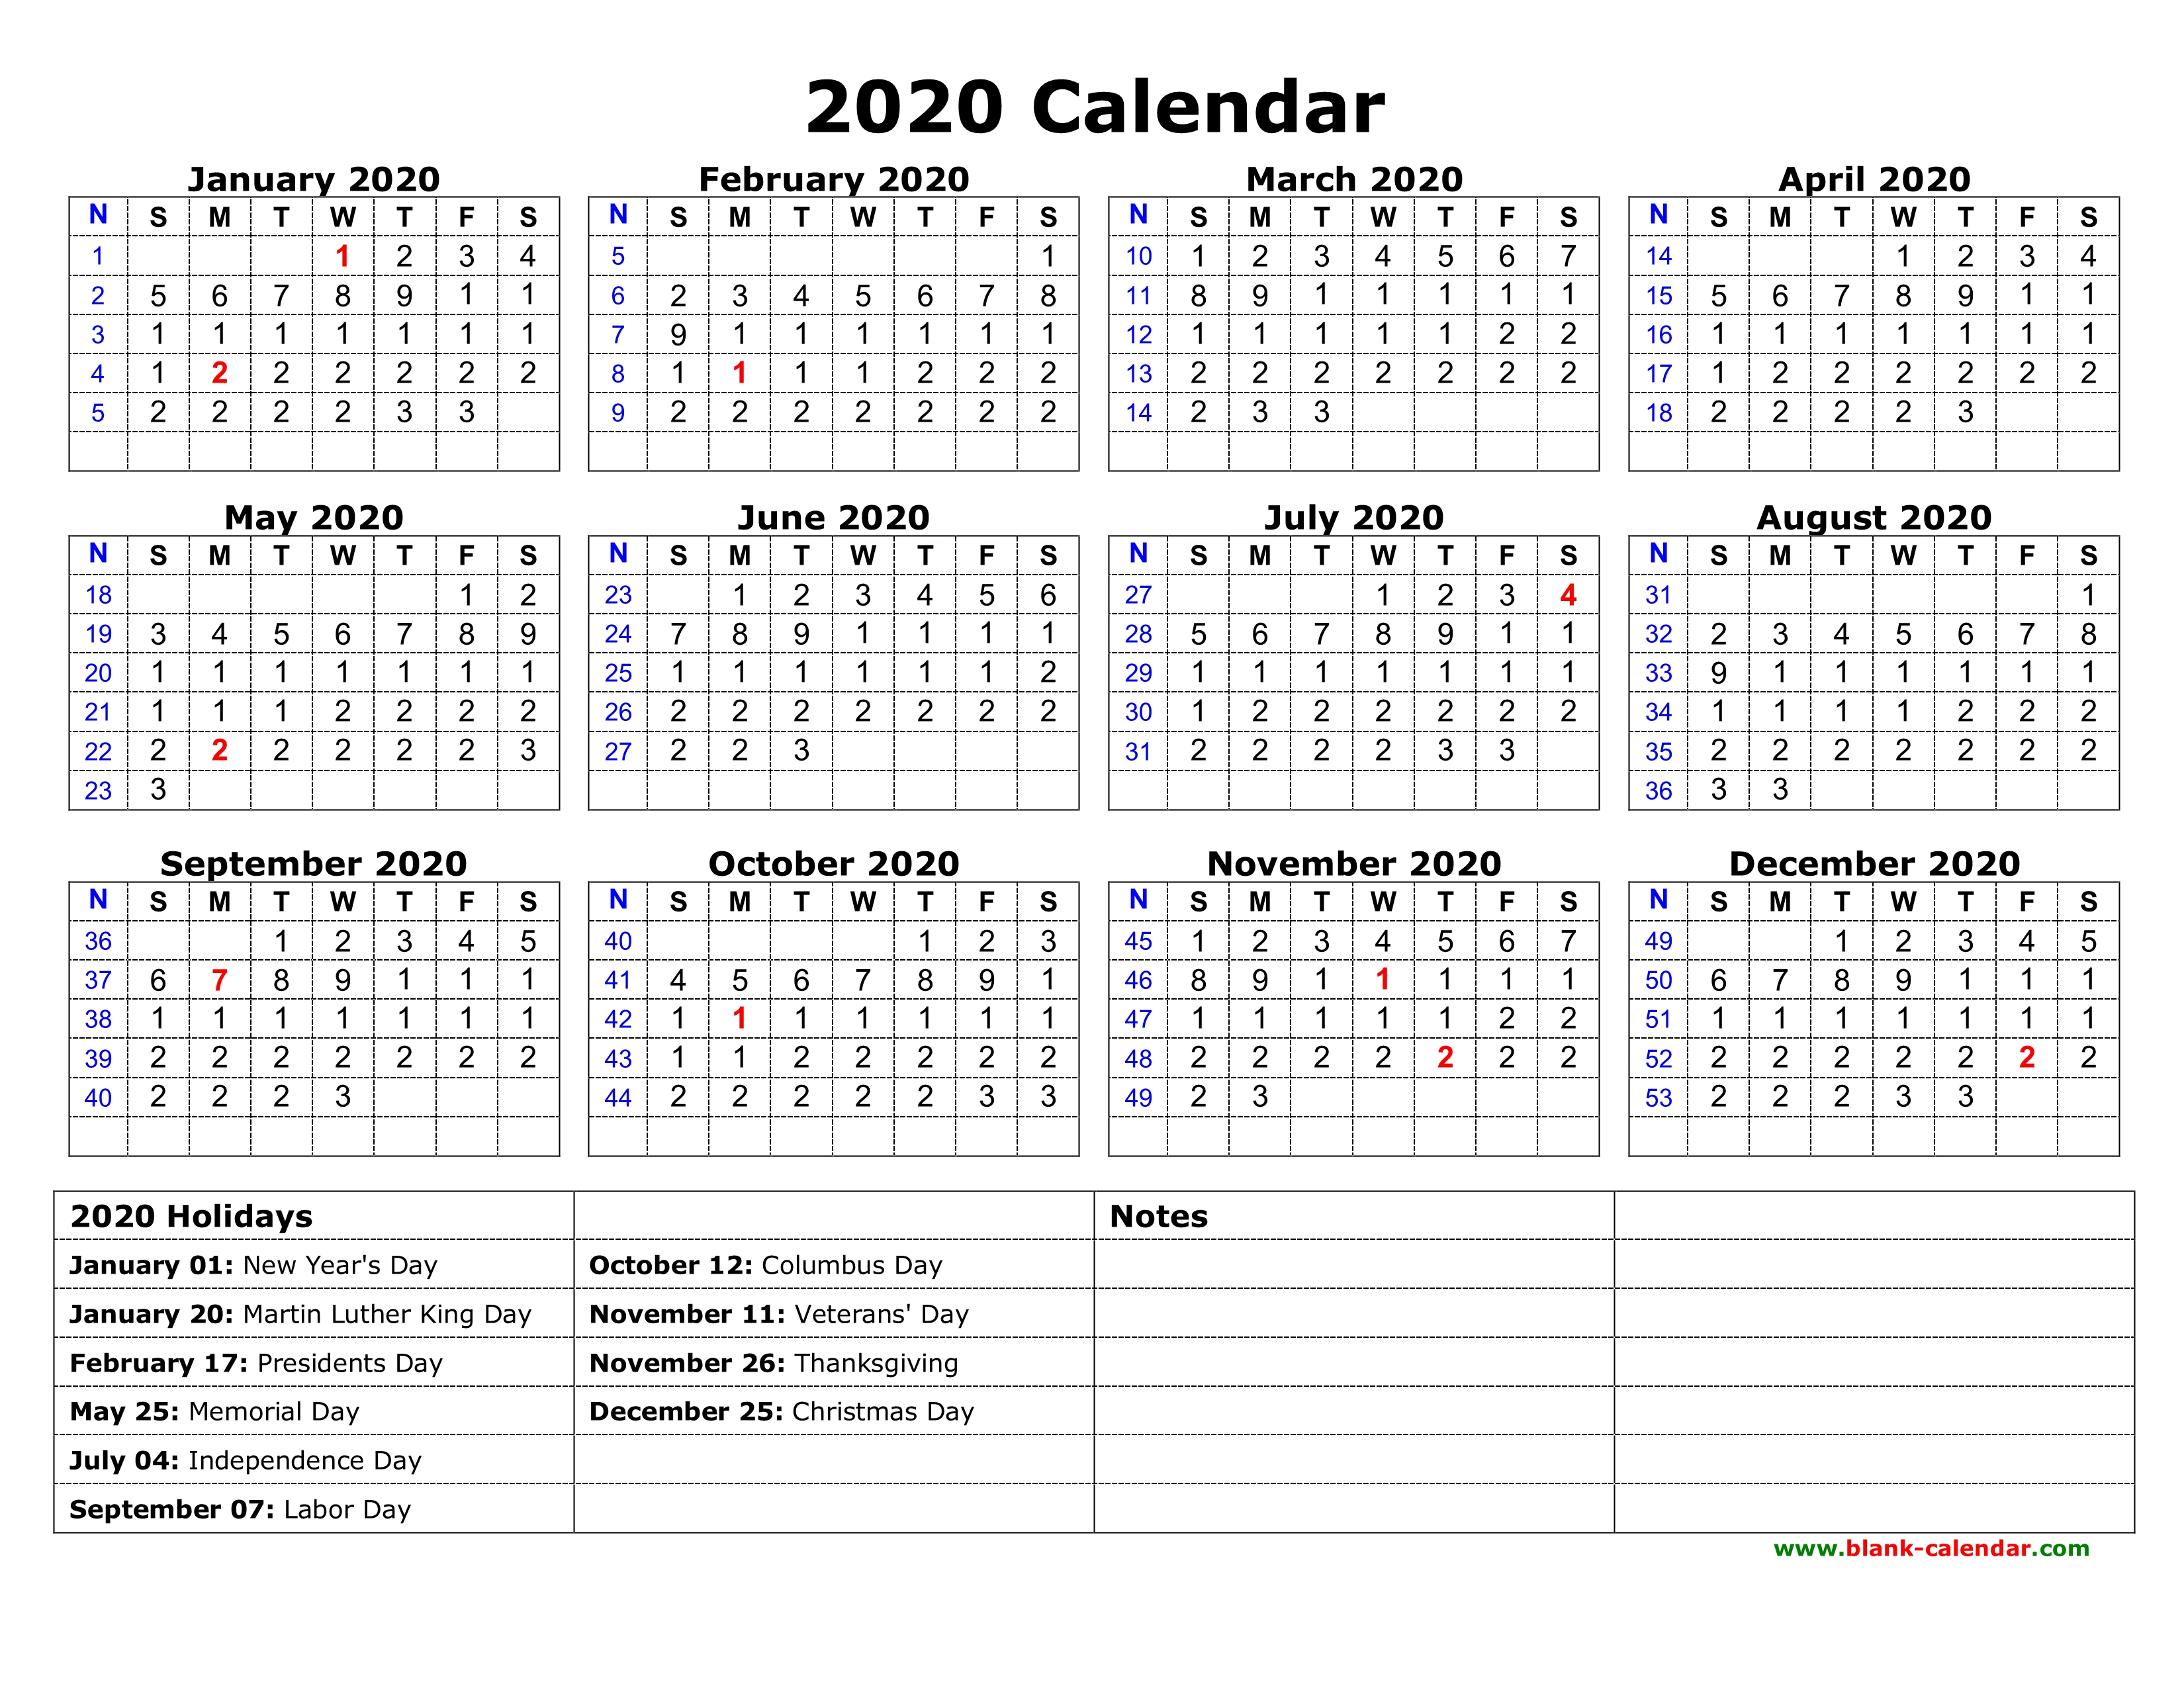 Calendar 2020 Printable With Holidays - Wpa.wpart.co pertaining to 2020 Yearly Calendar With Holidays Printable